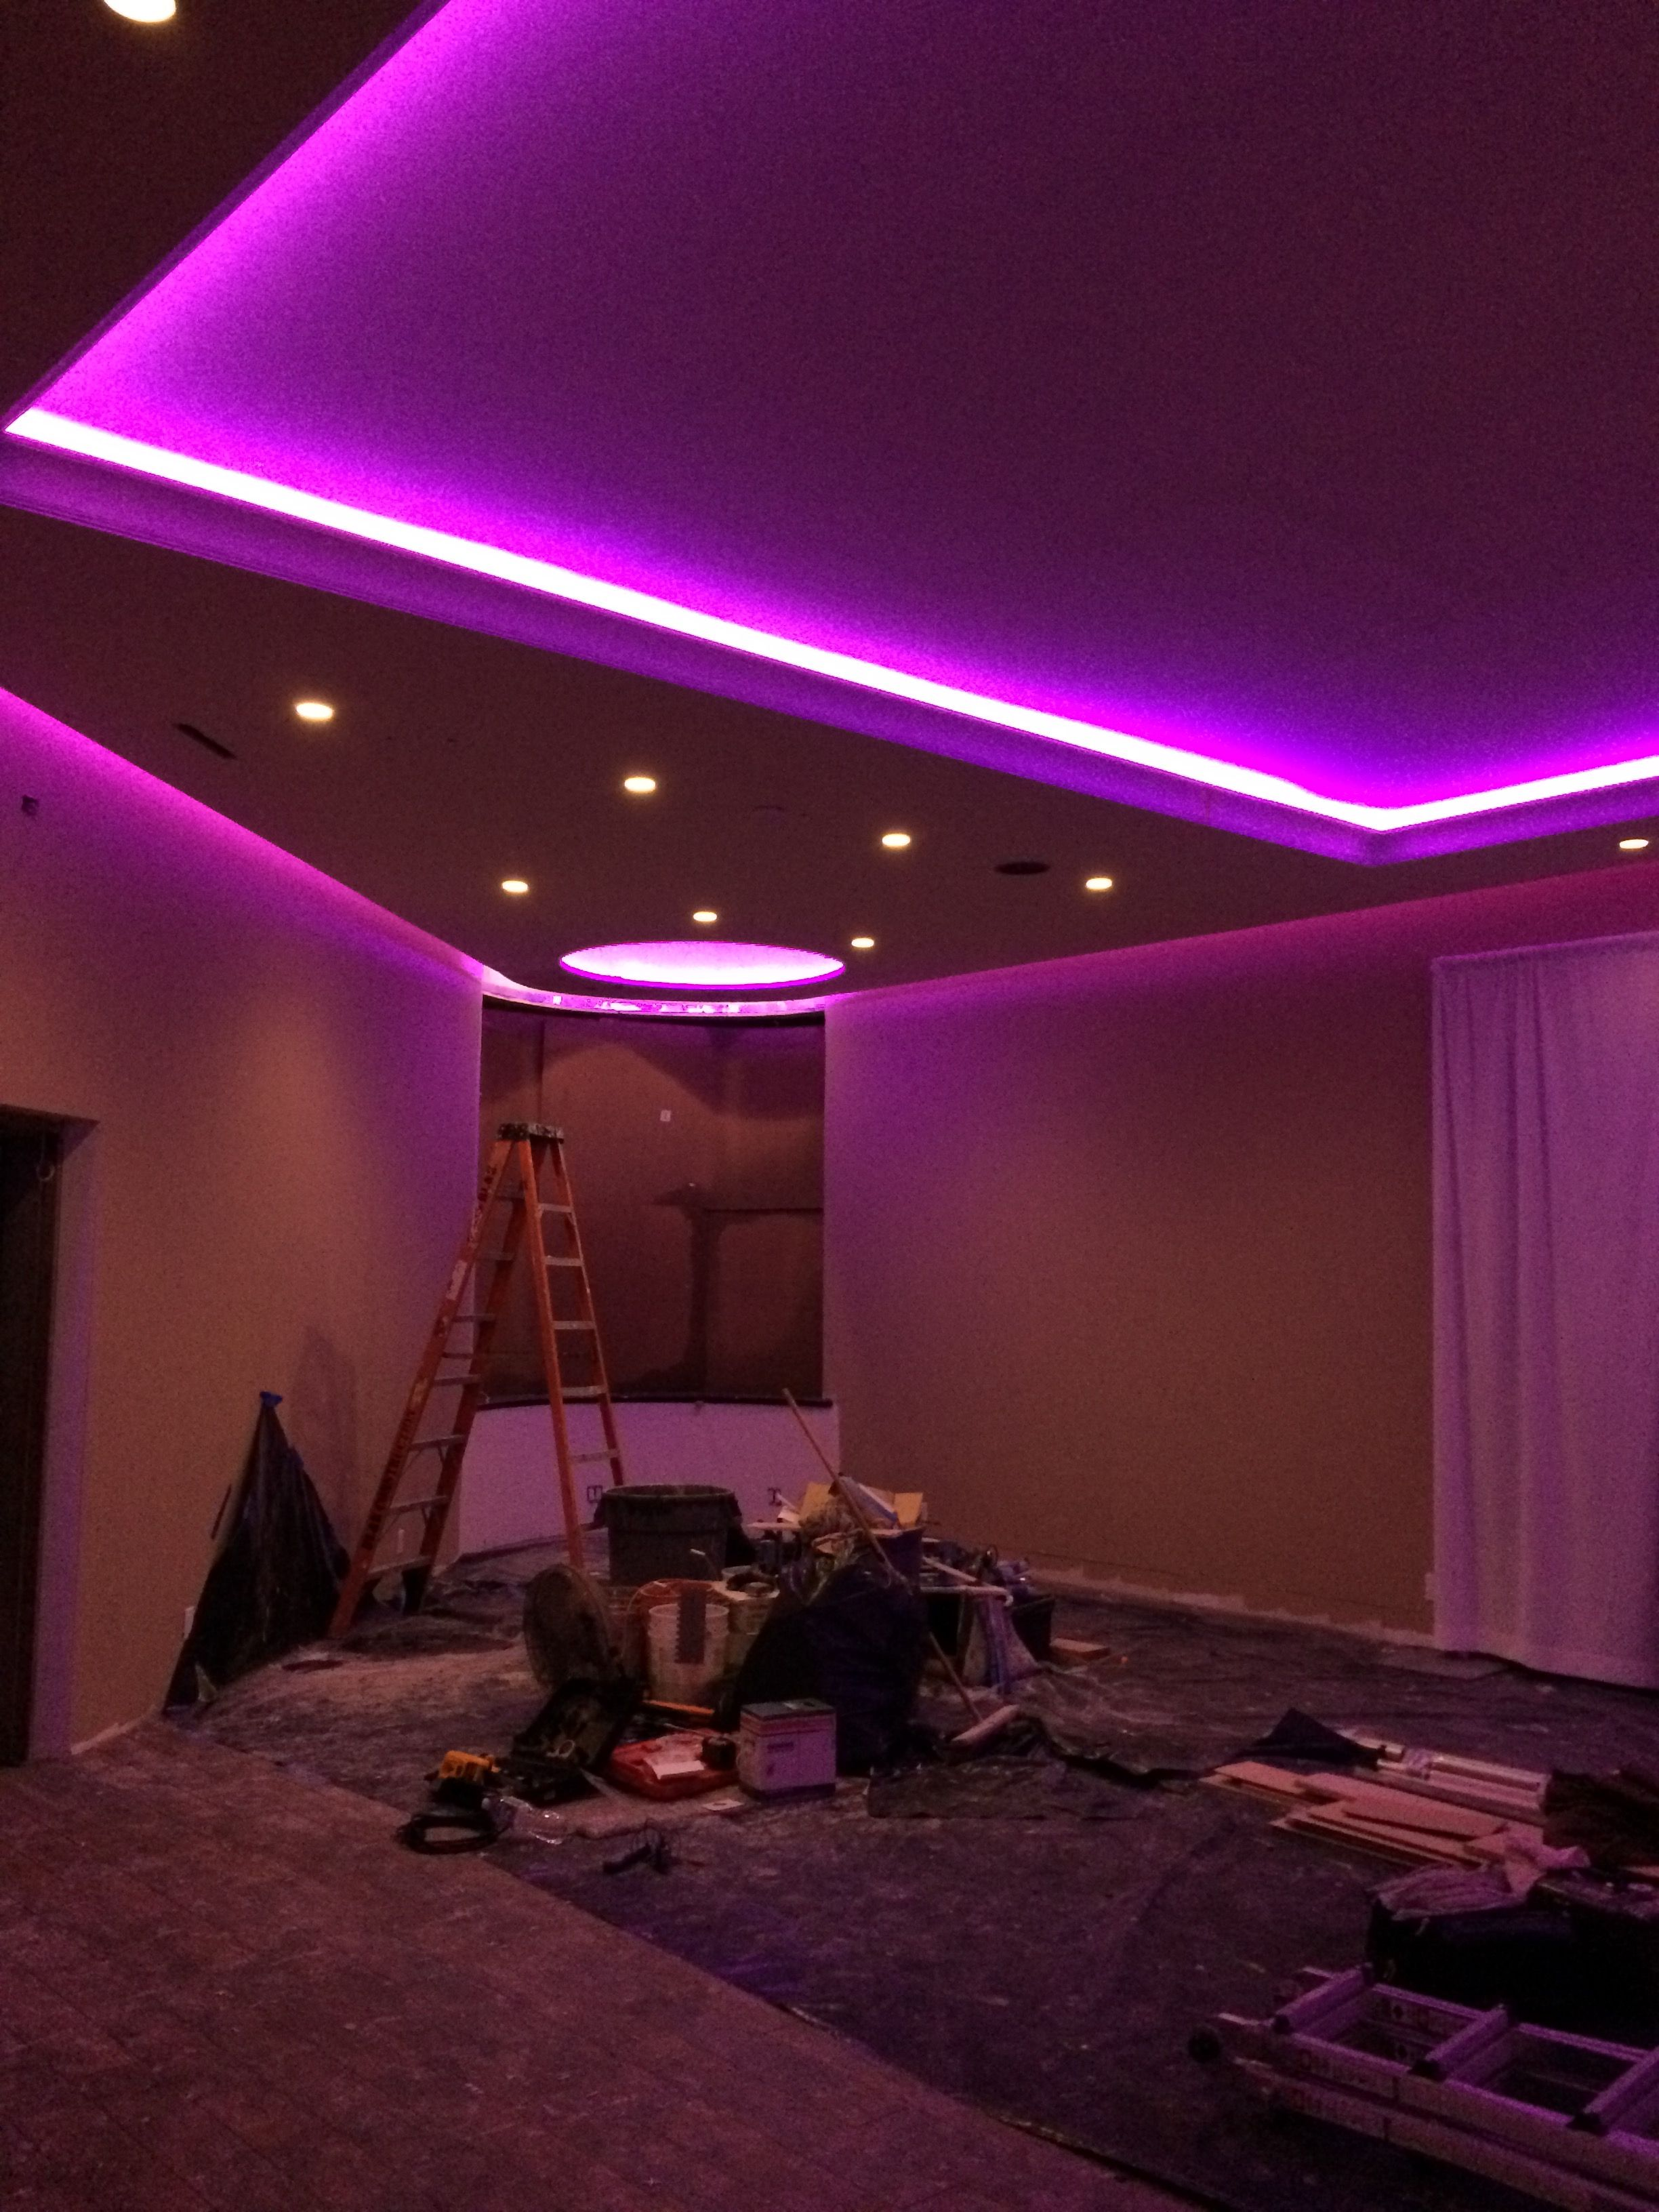 Led Tape In Soffet Millions And Millions Of Colors Led Ledlighting Colors Cateringhall Bronx Nyc Swe Led Room Lighting Led Lighting Bedroom Led Lights